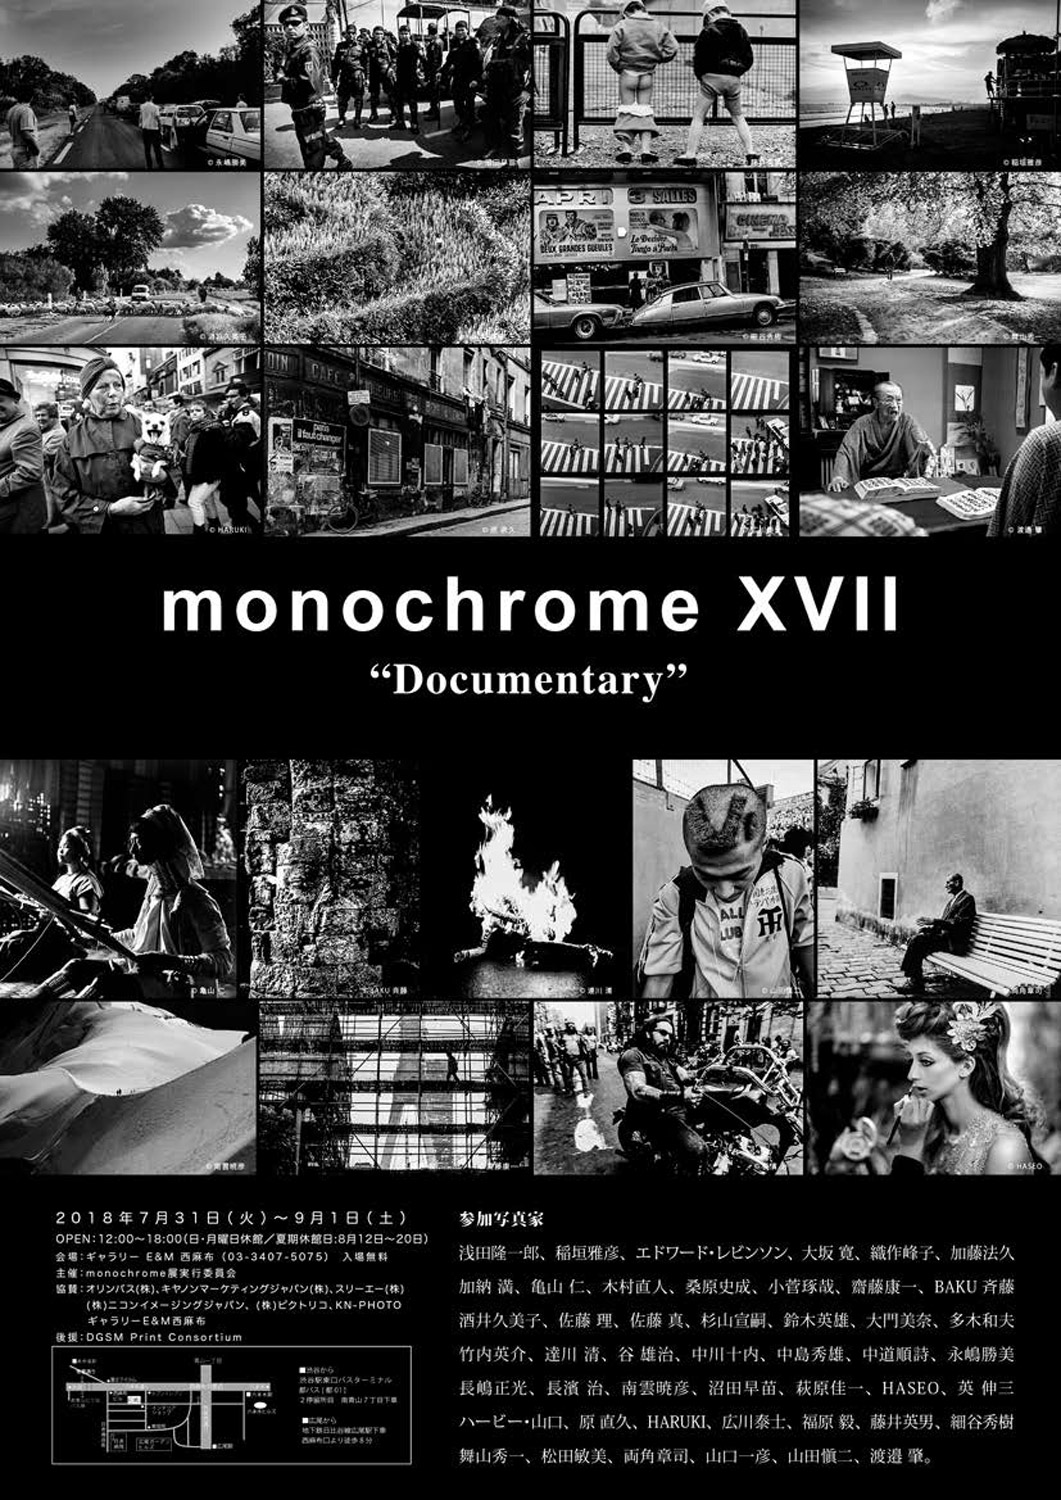 monochrome XVII [Documentary]